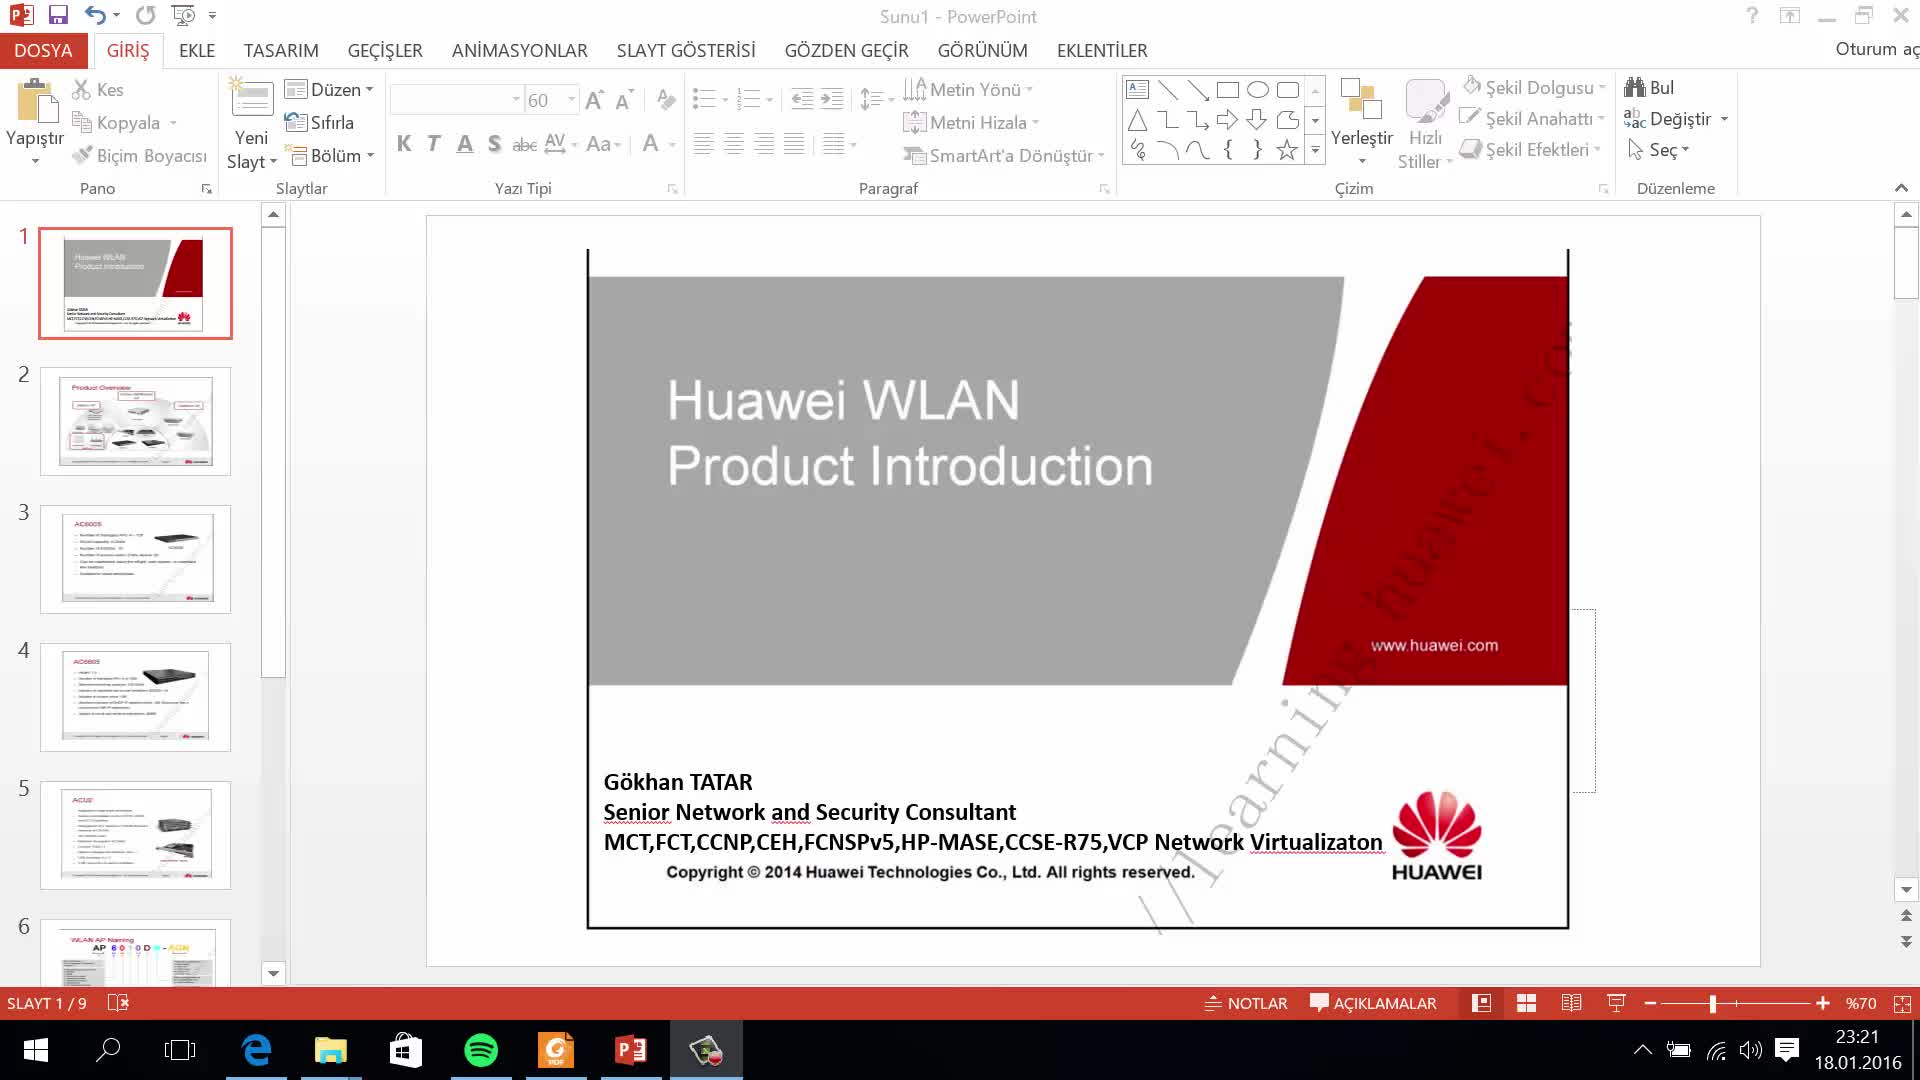 Huawei WLAN Product Introduction